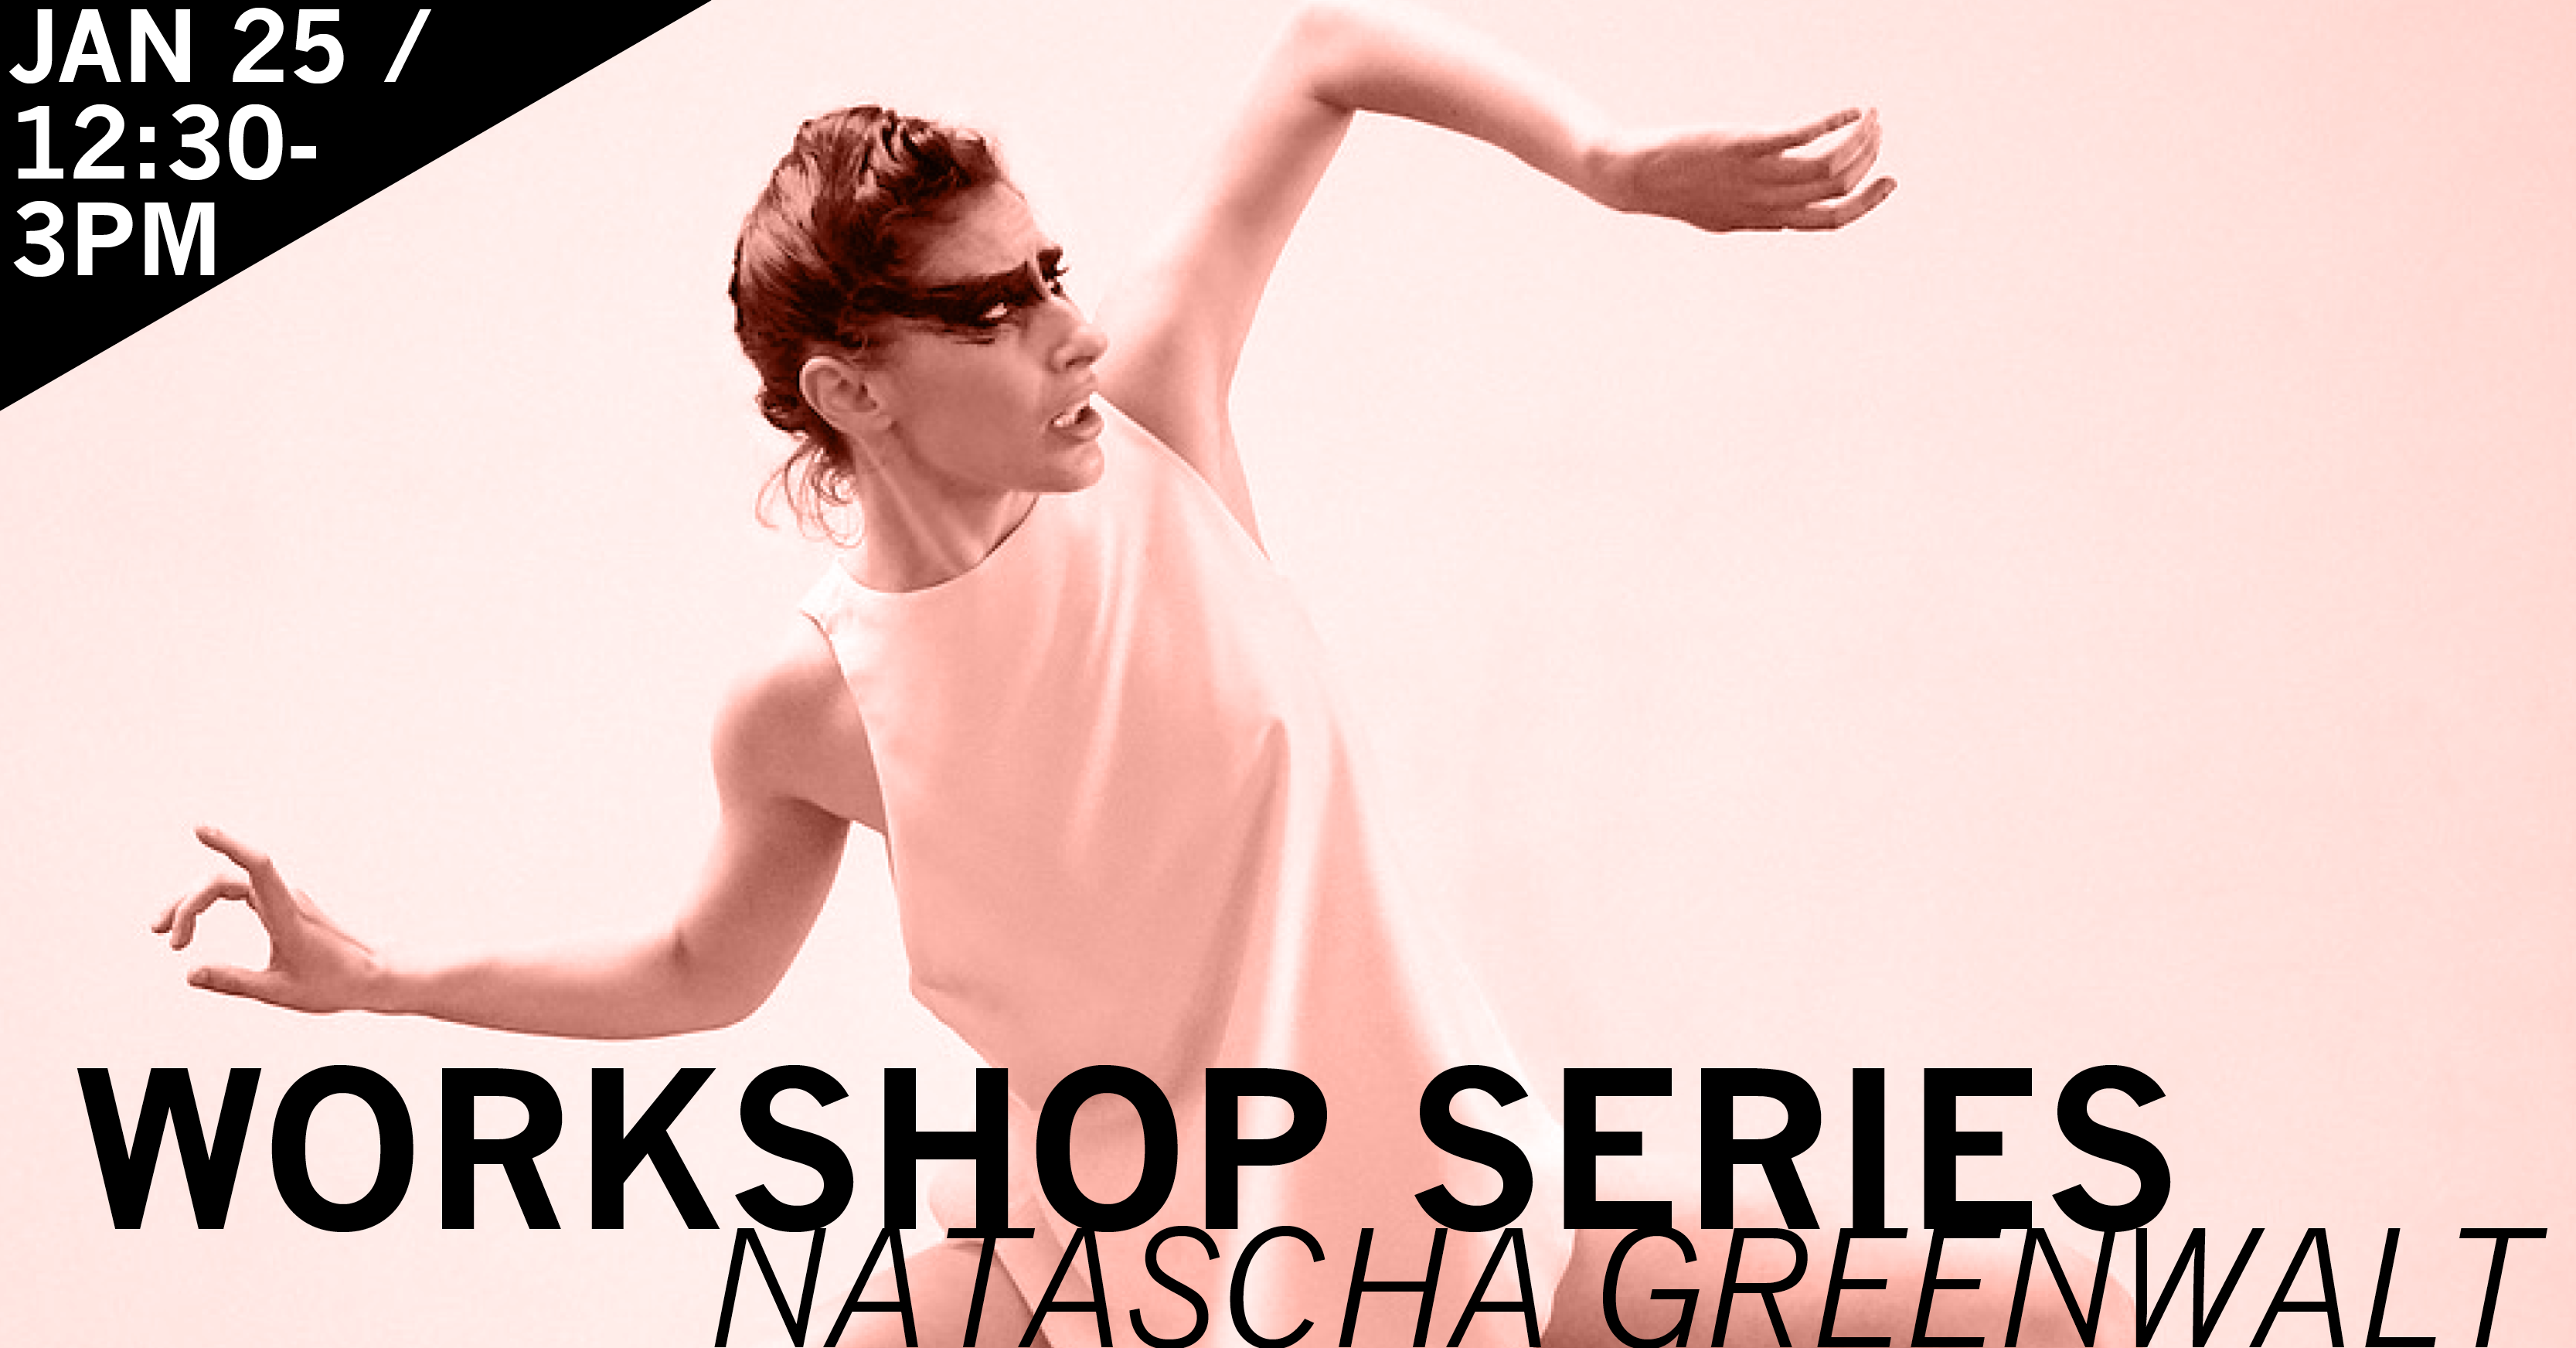 Web_NataschaGreenwalt_workshop_2019